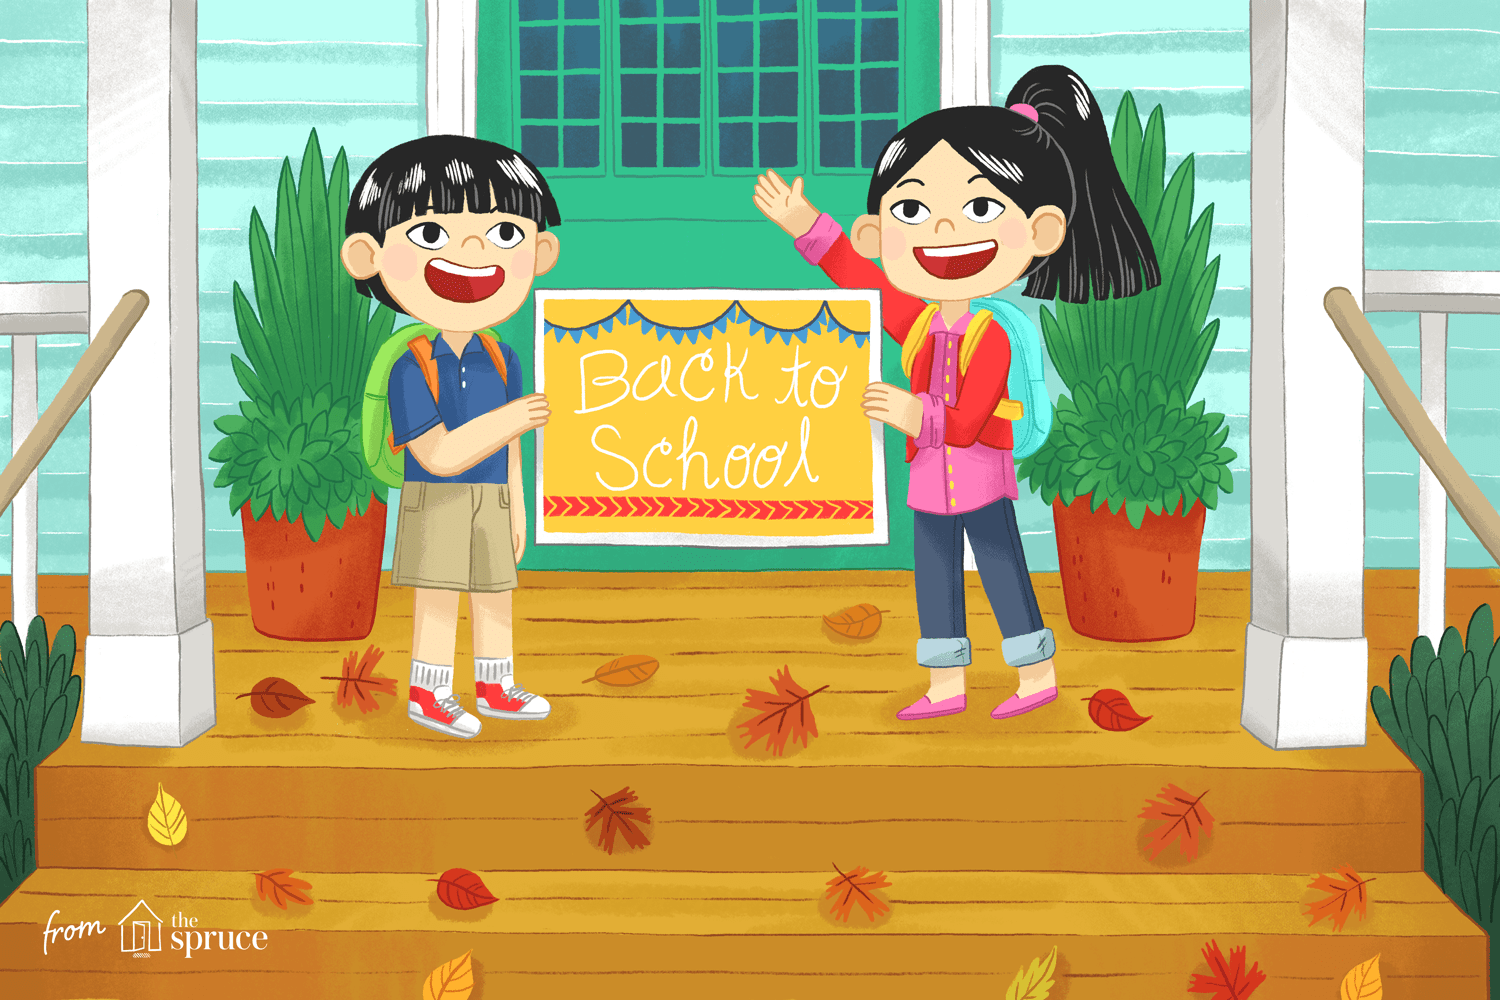 Illustration of two kids holding back to school sign